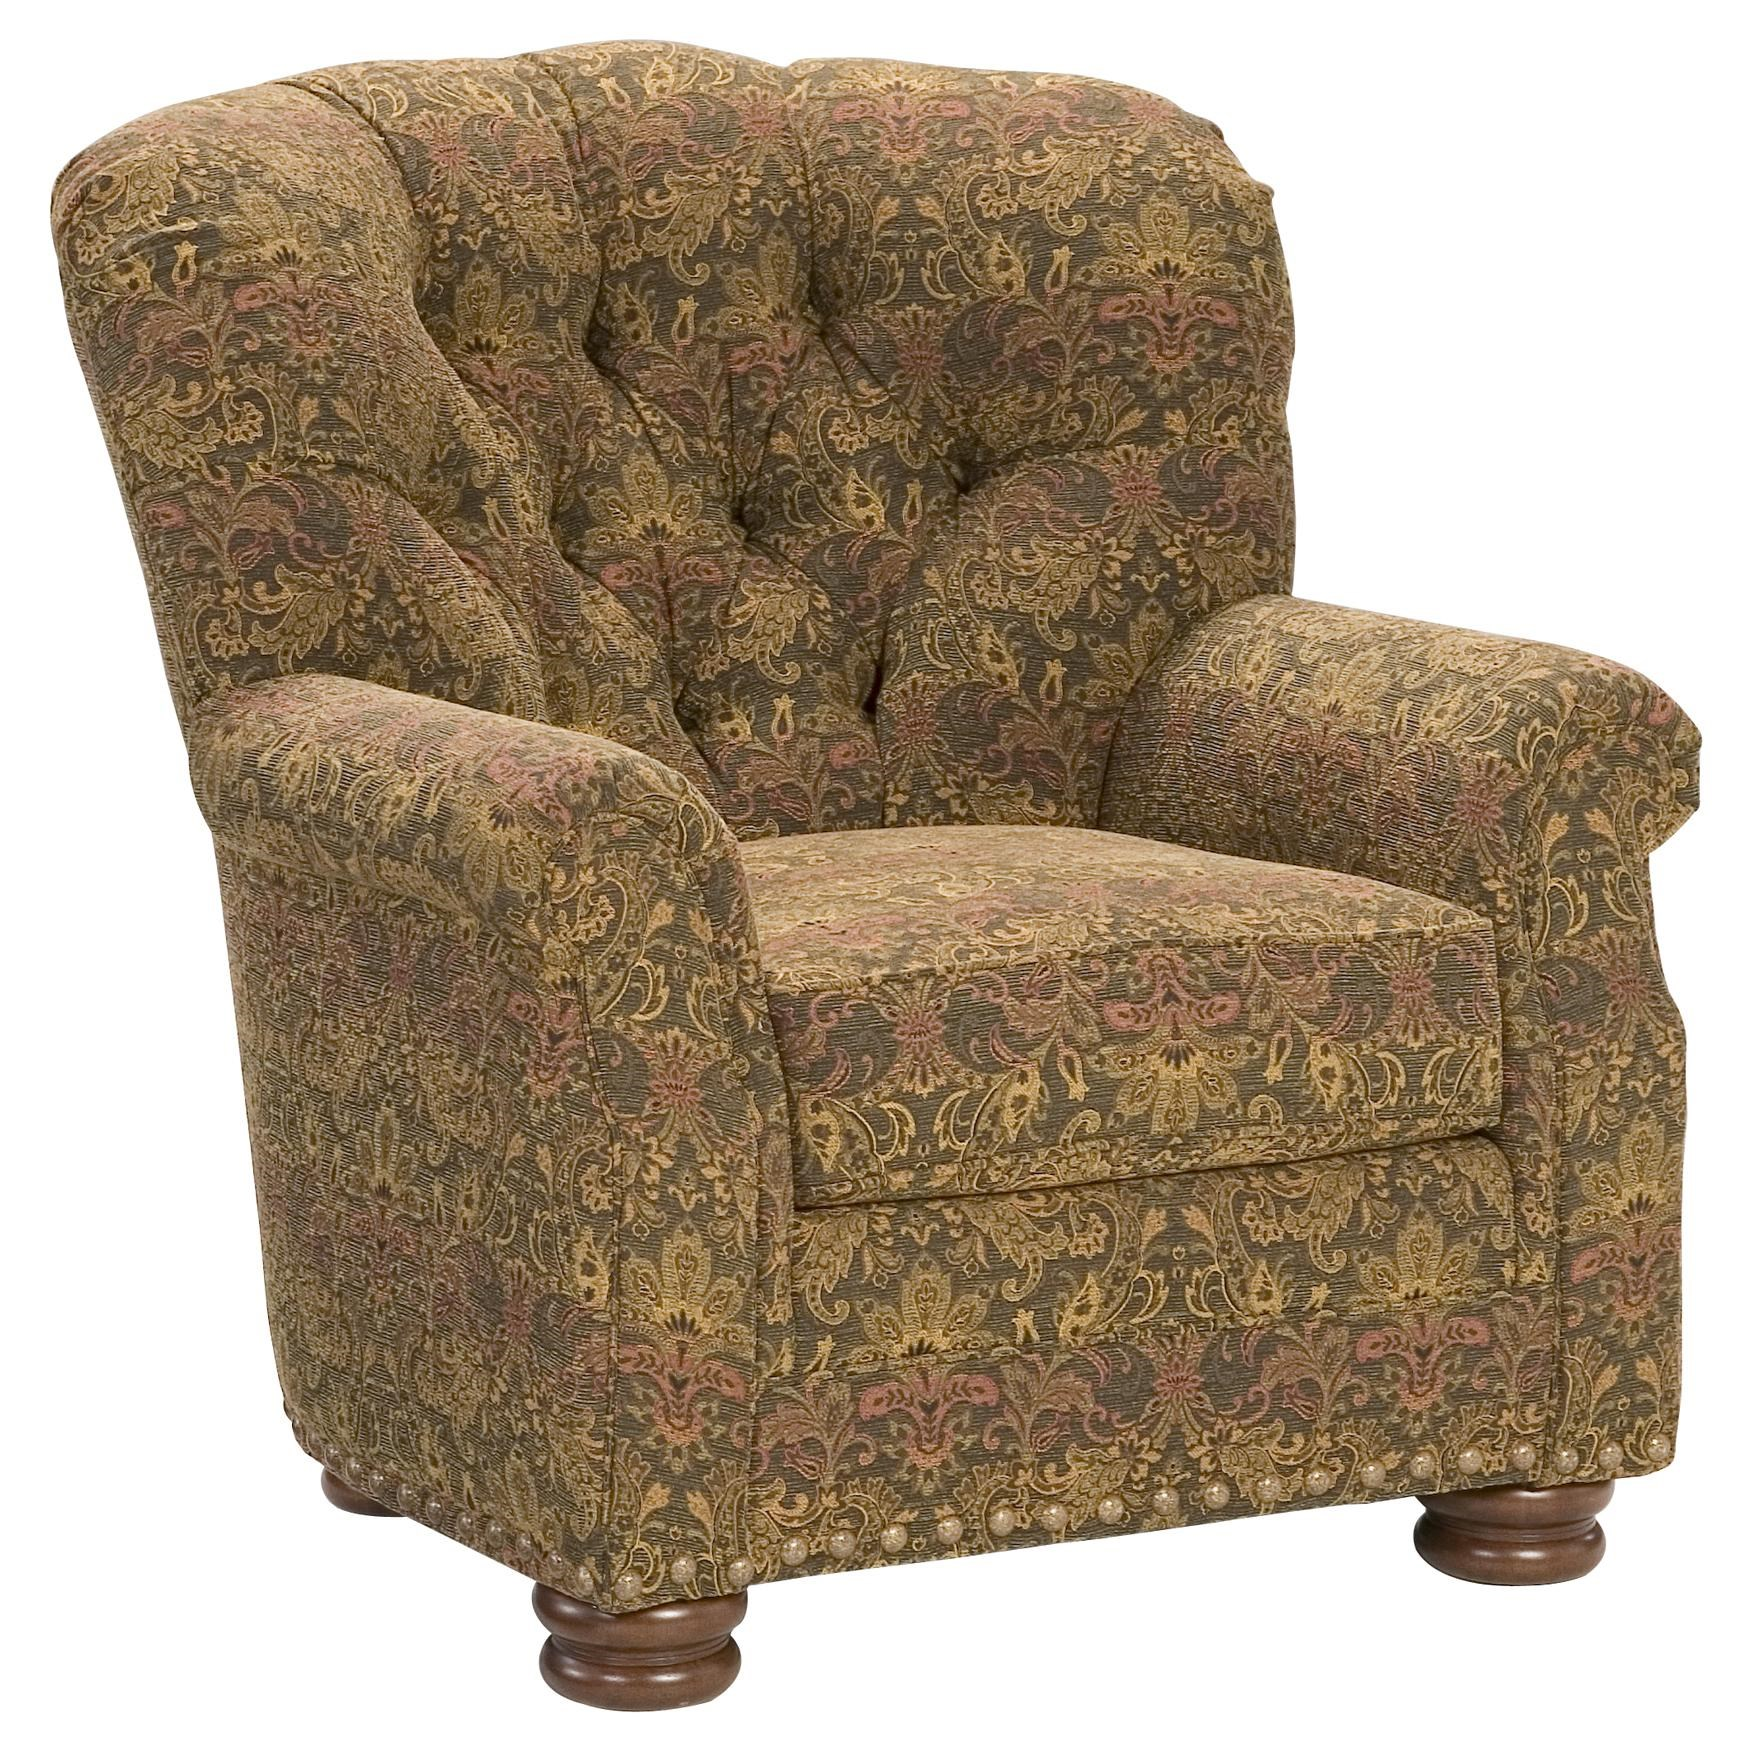 King Hickory King Hickory Accent Chairs And OttomansOscar Tufted Back Chair